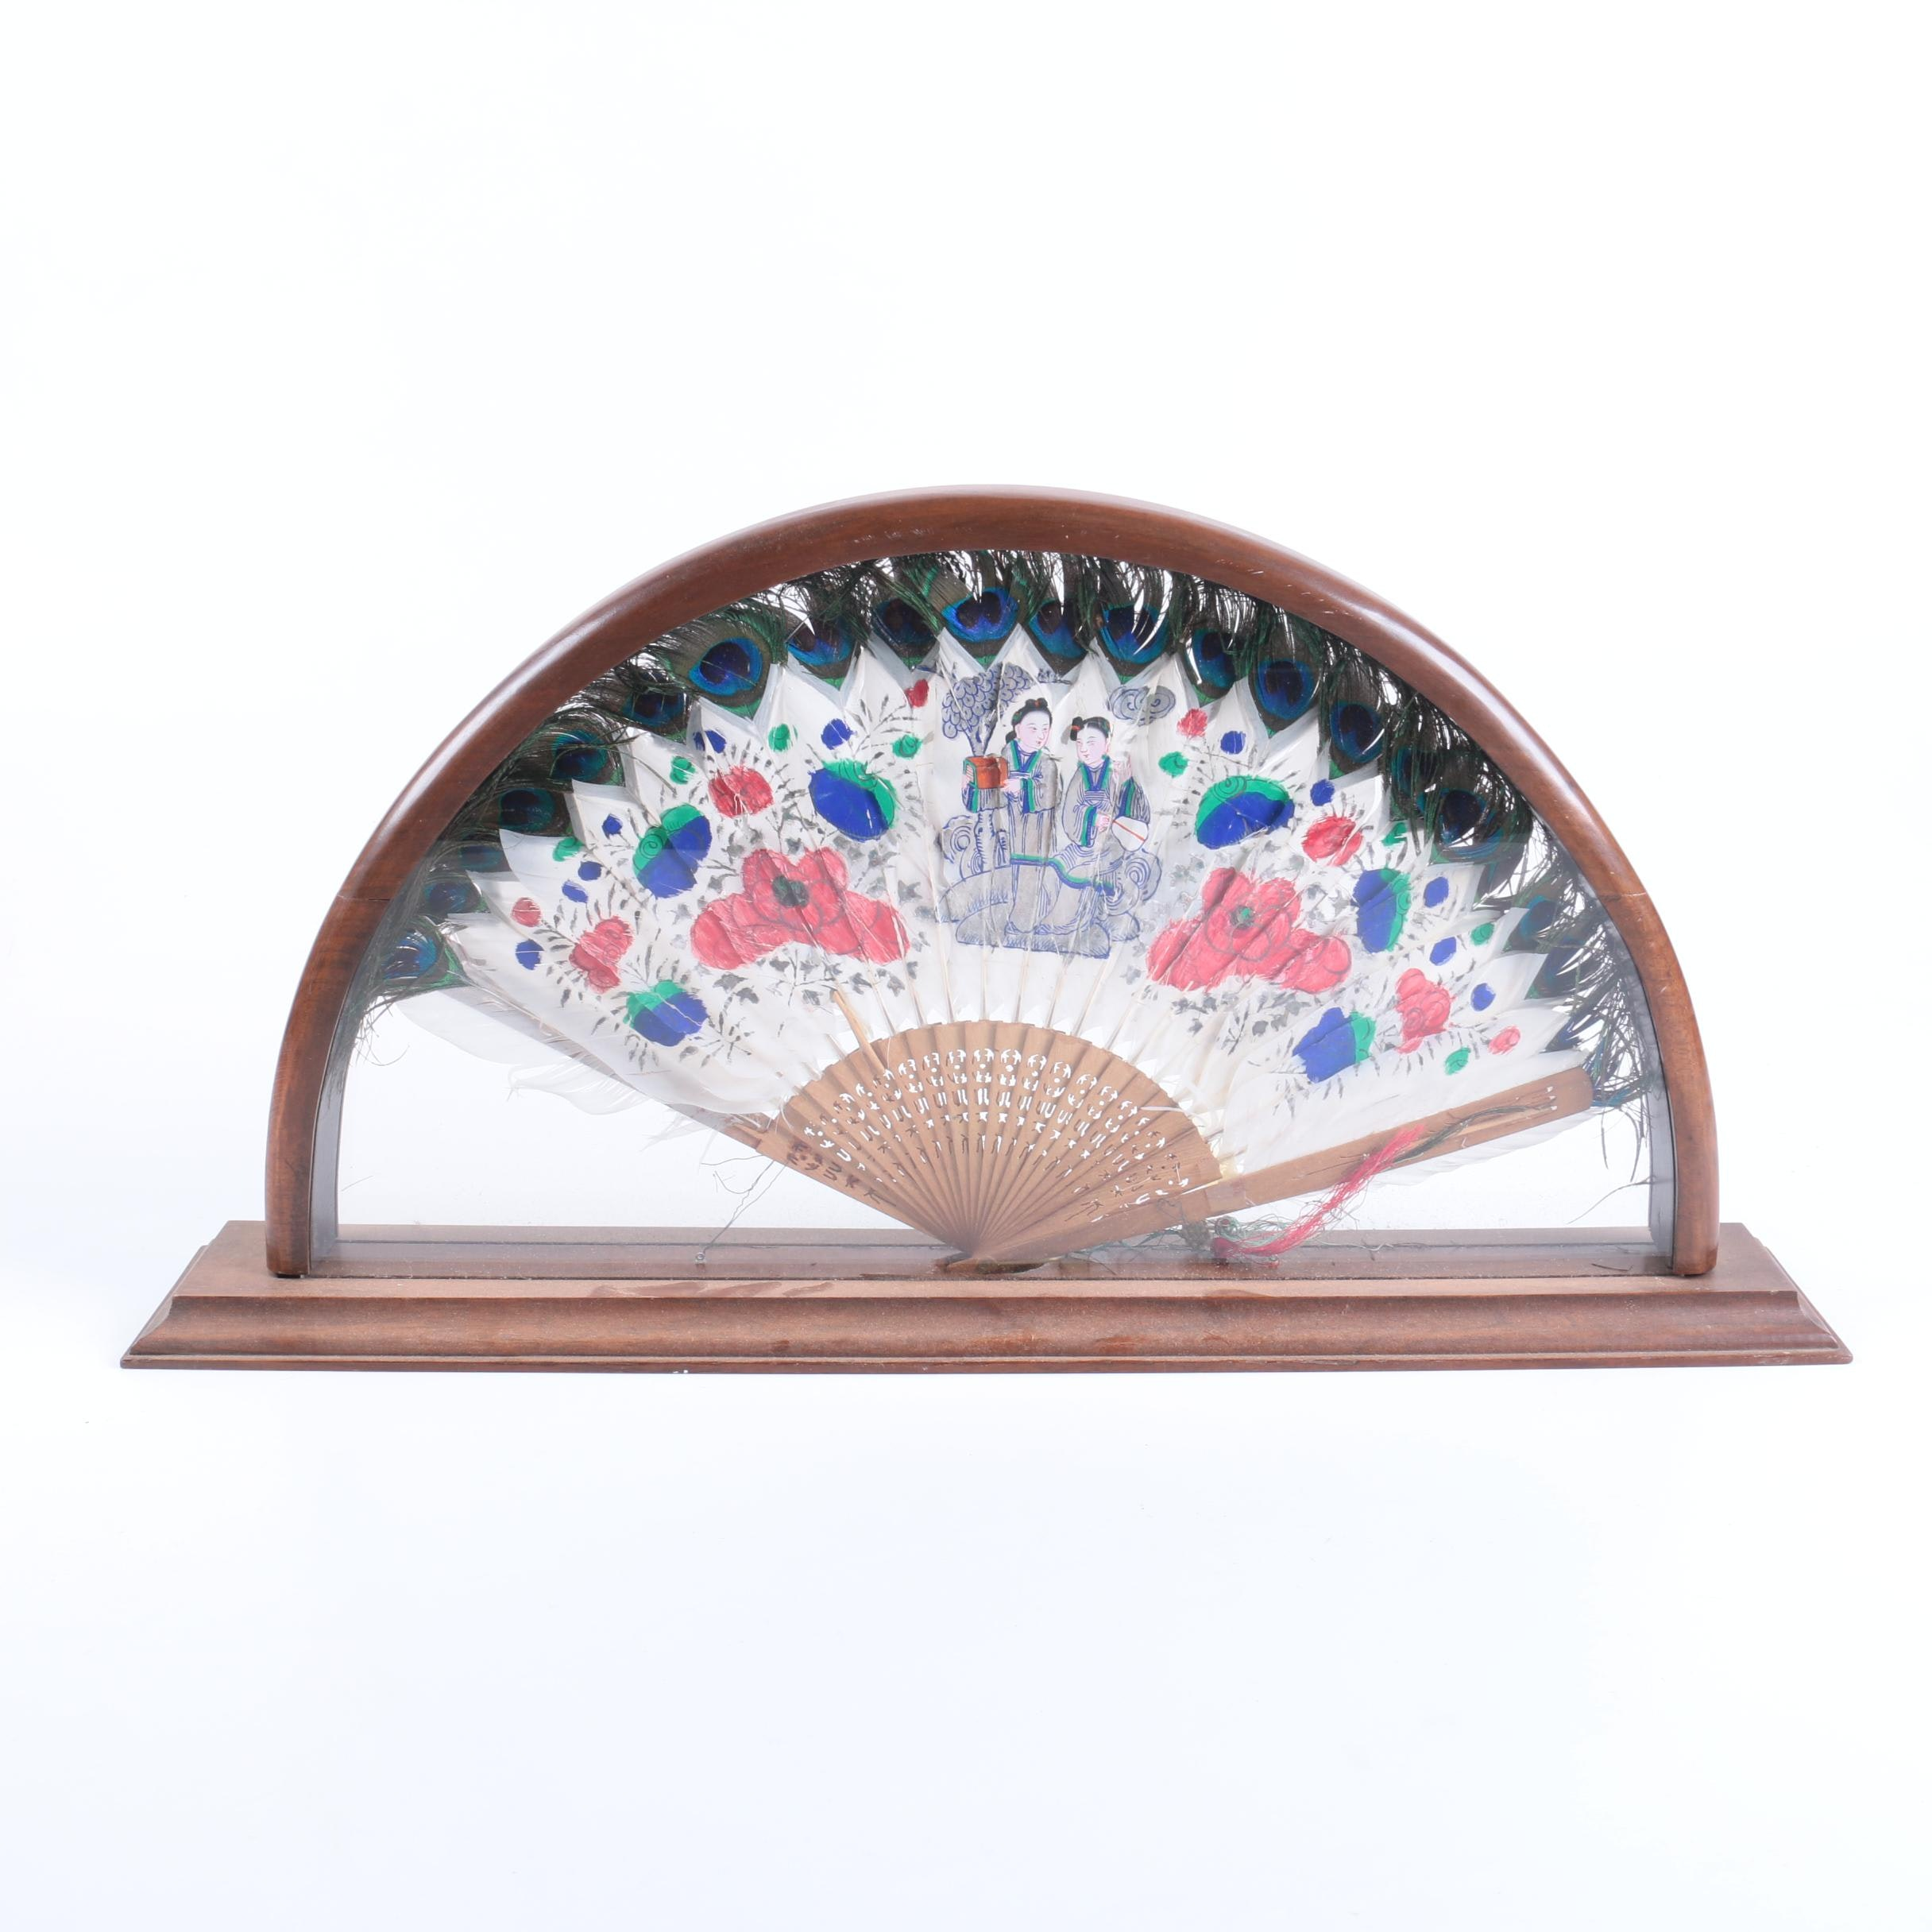 Chinese Folding Hand Fan with Peacock Feathers in Case